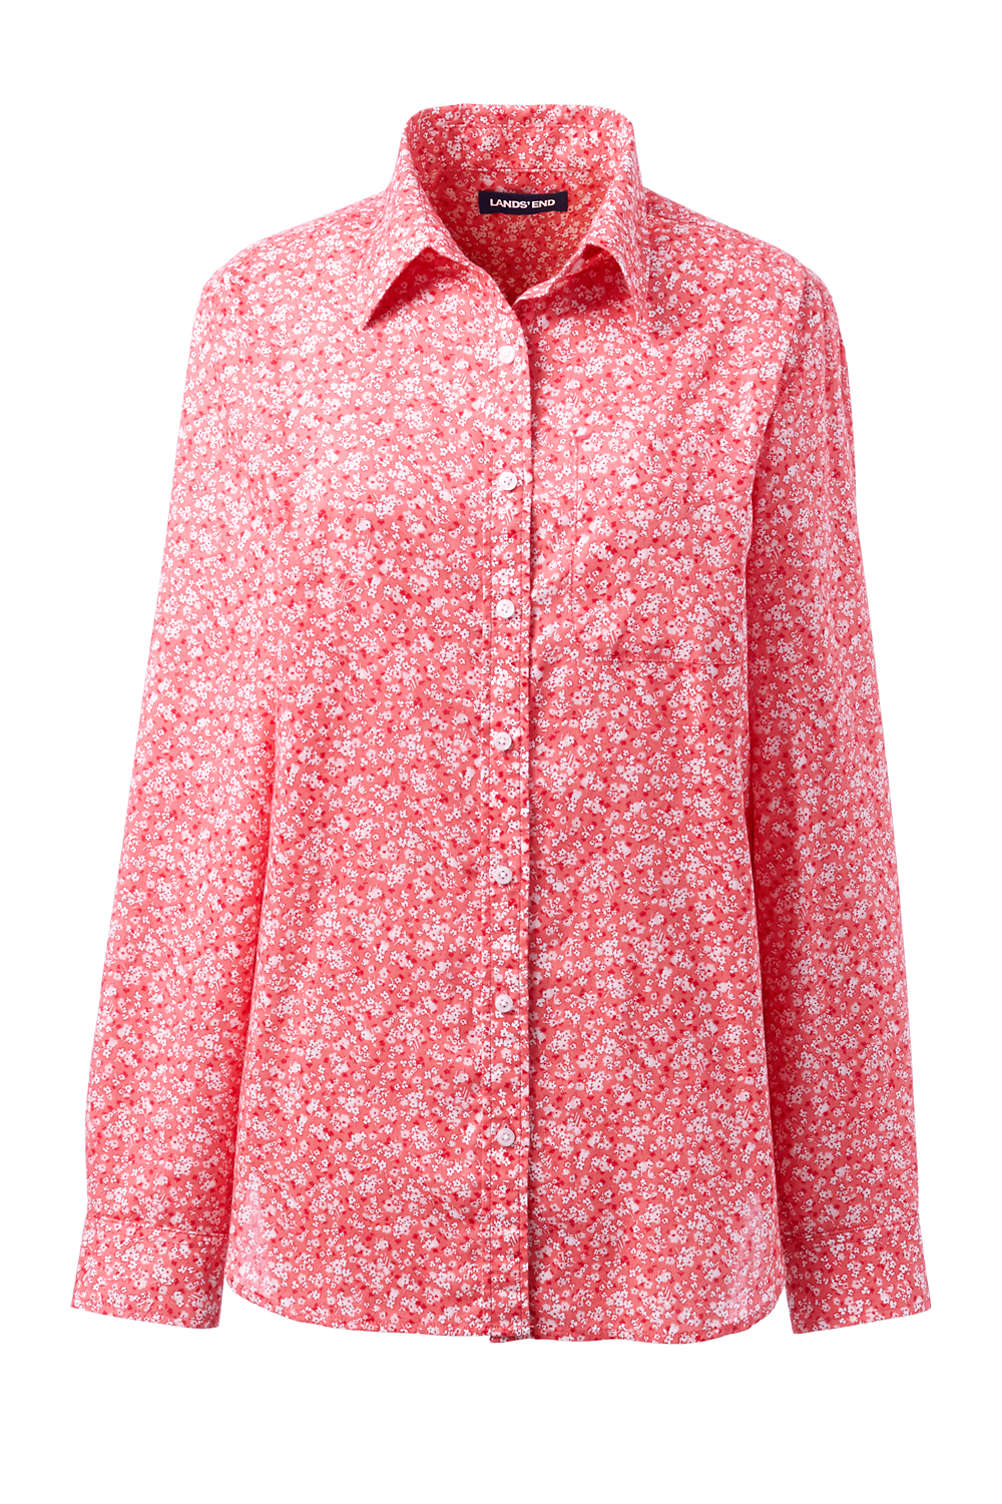 fb45dddaa11 Women's Plus Size Roll Sleeve Cotton Linen Shirt from Lands' End